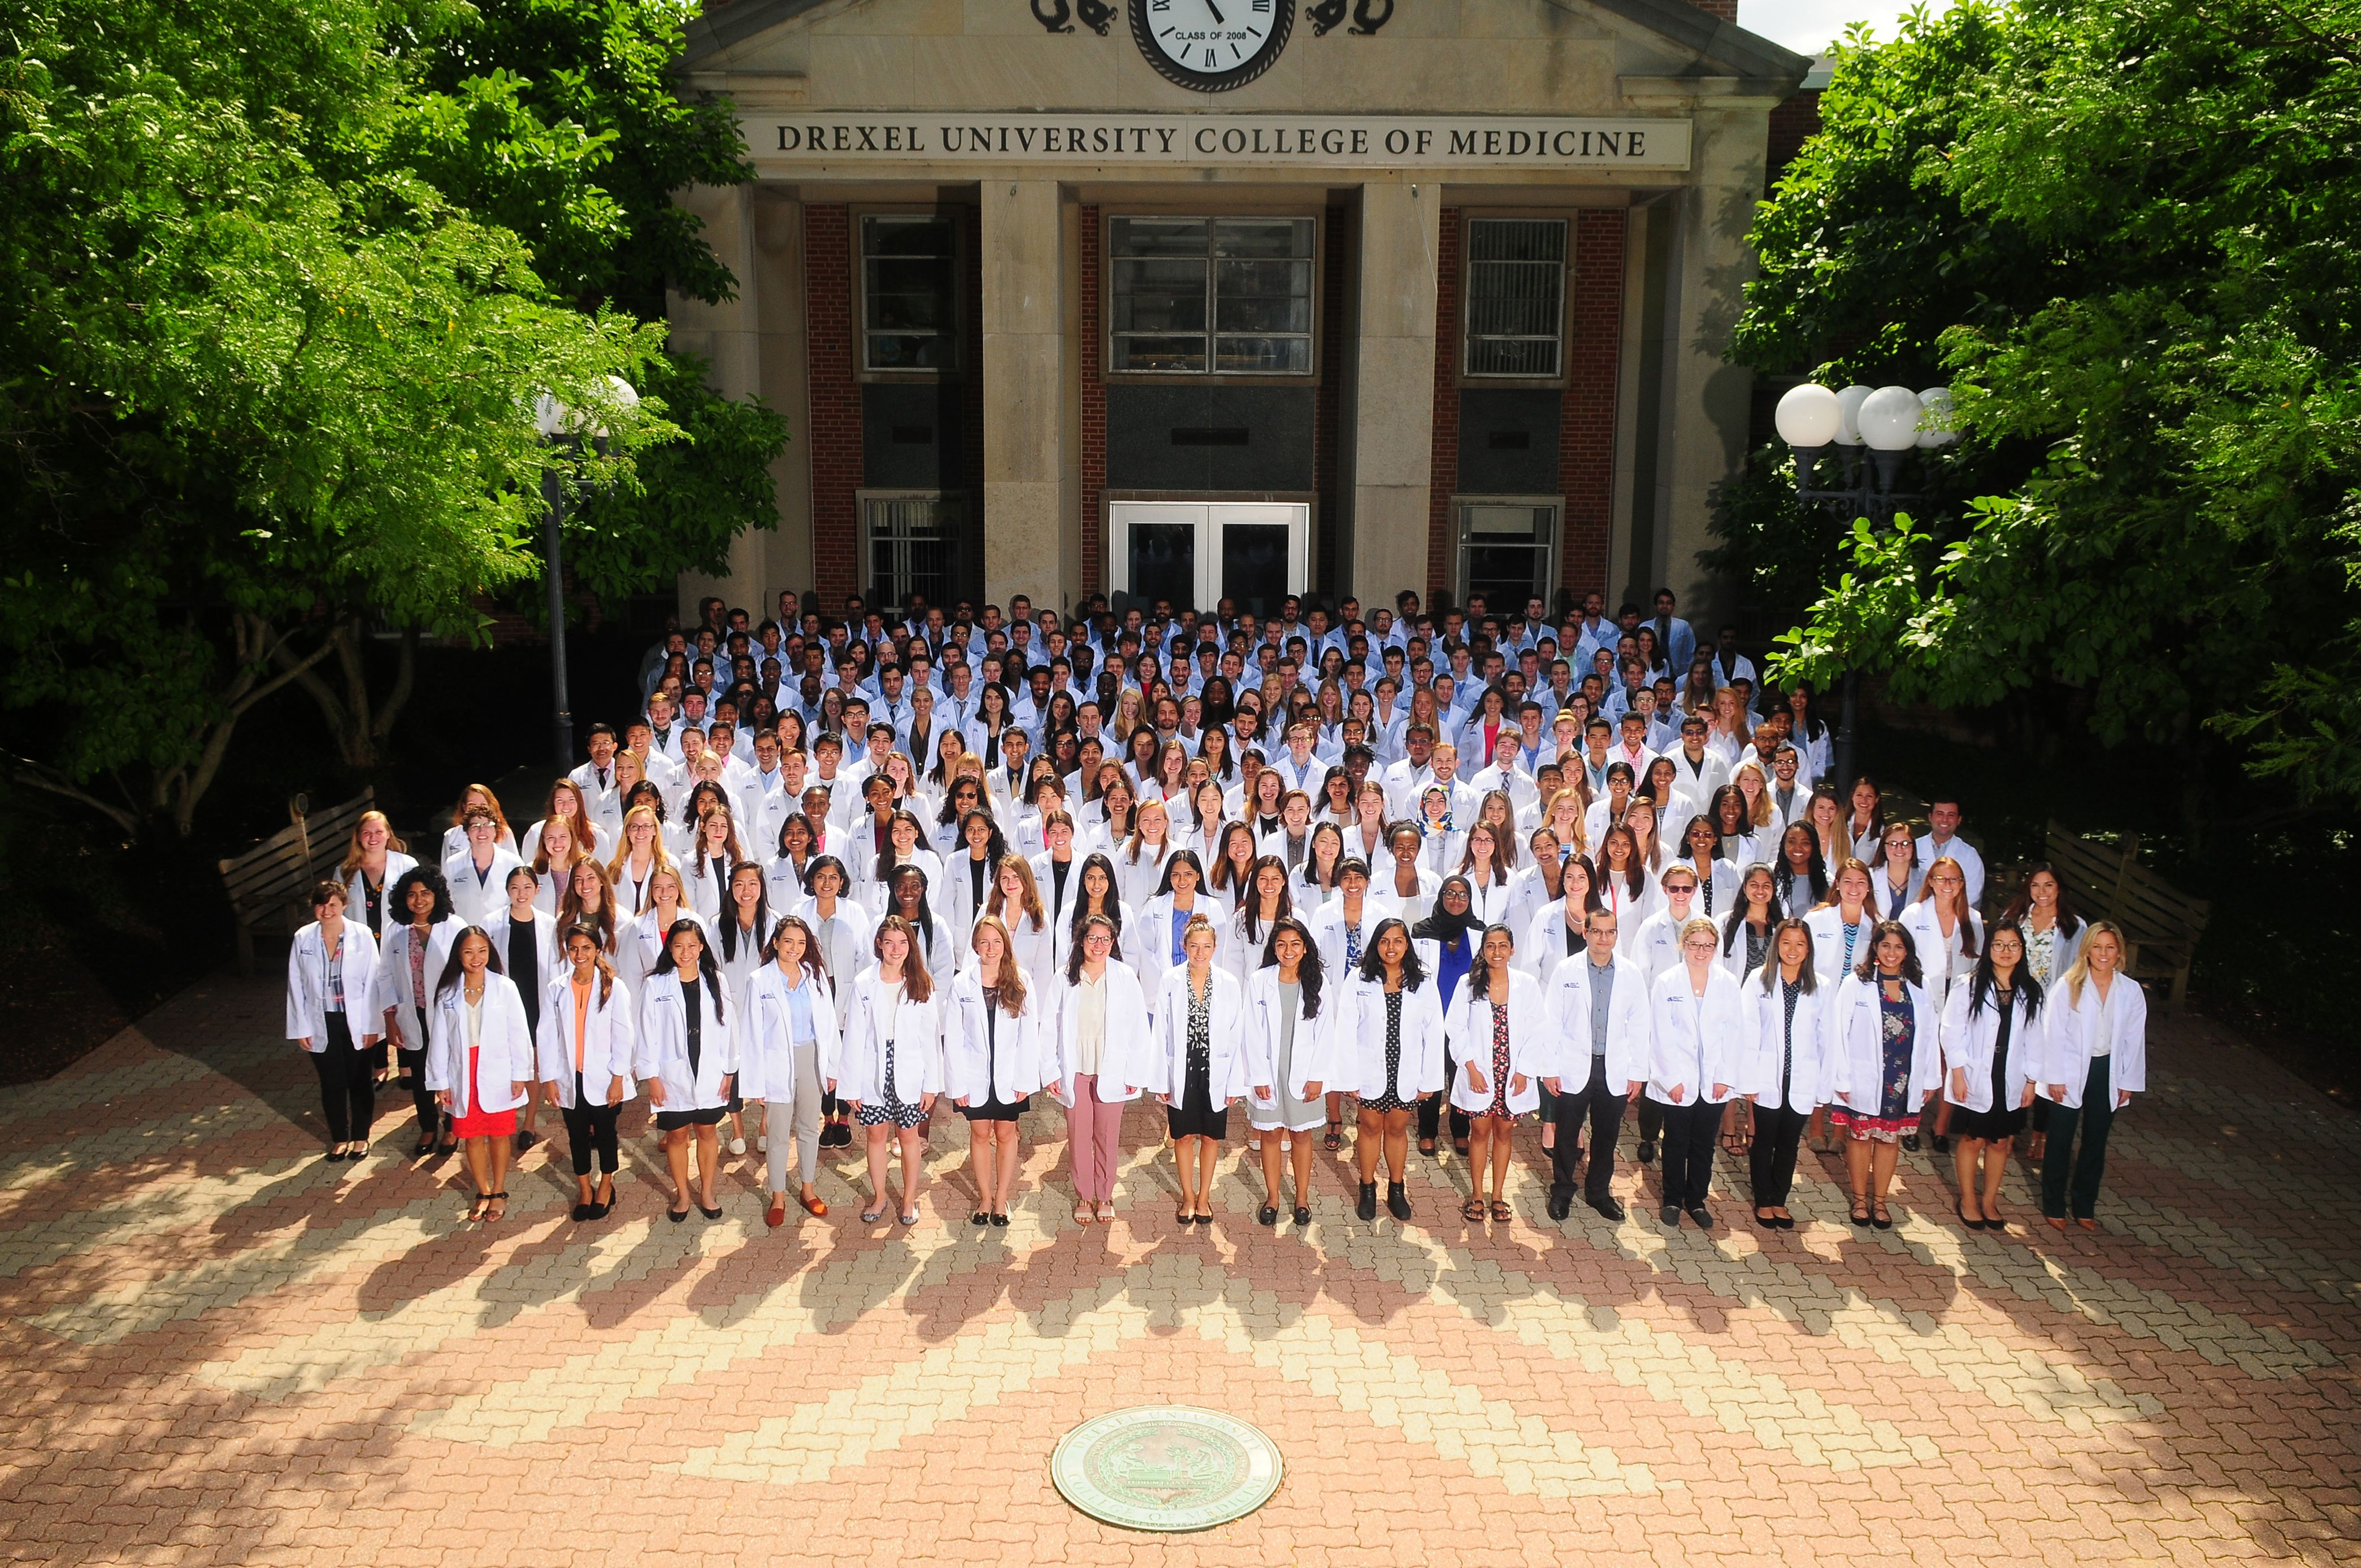 Drexel University College of Medicine's MD Class of 2022 in